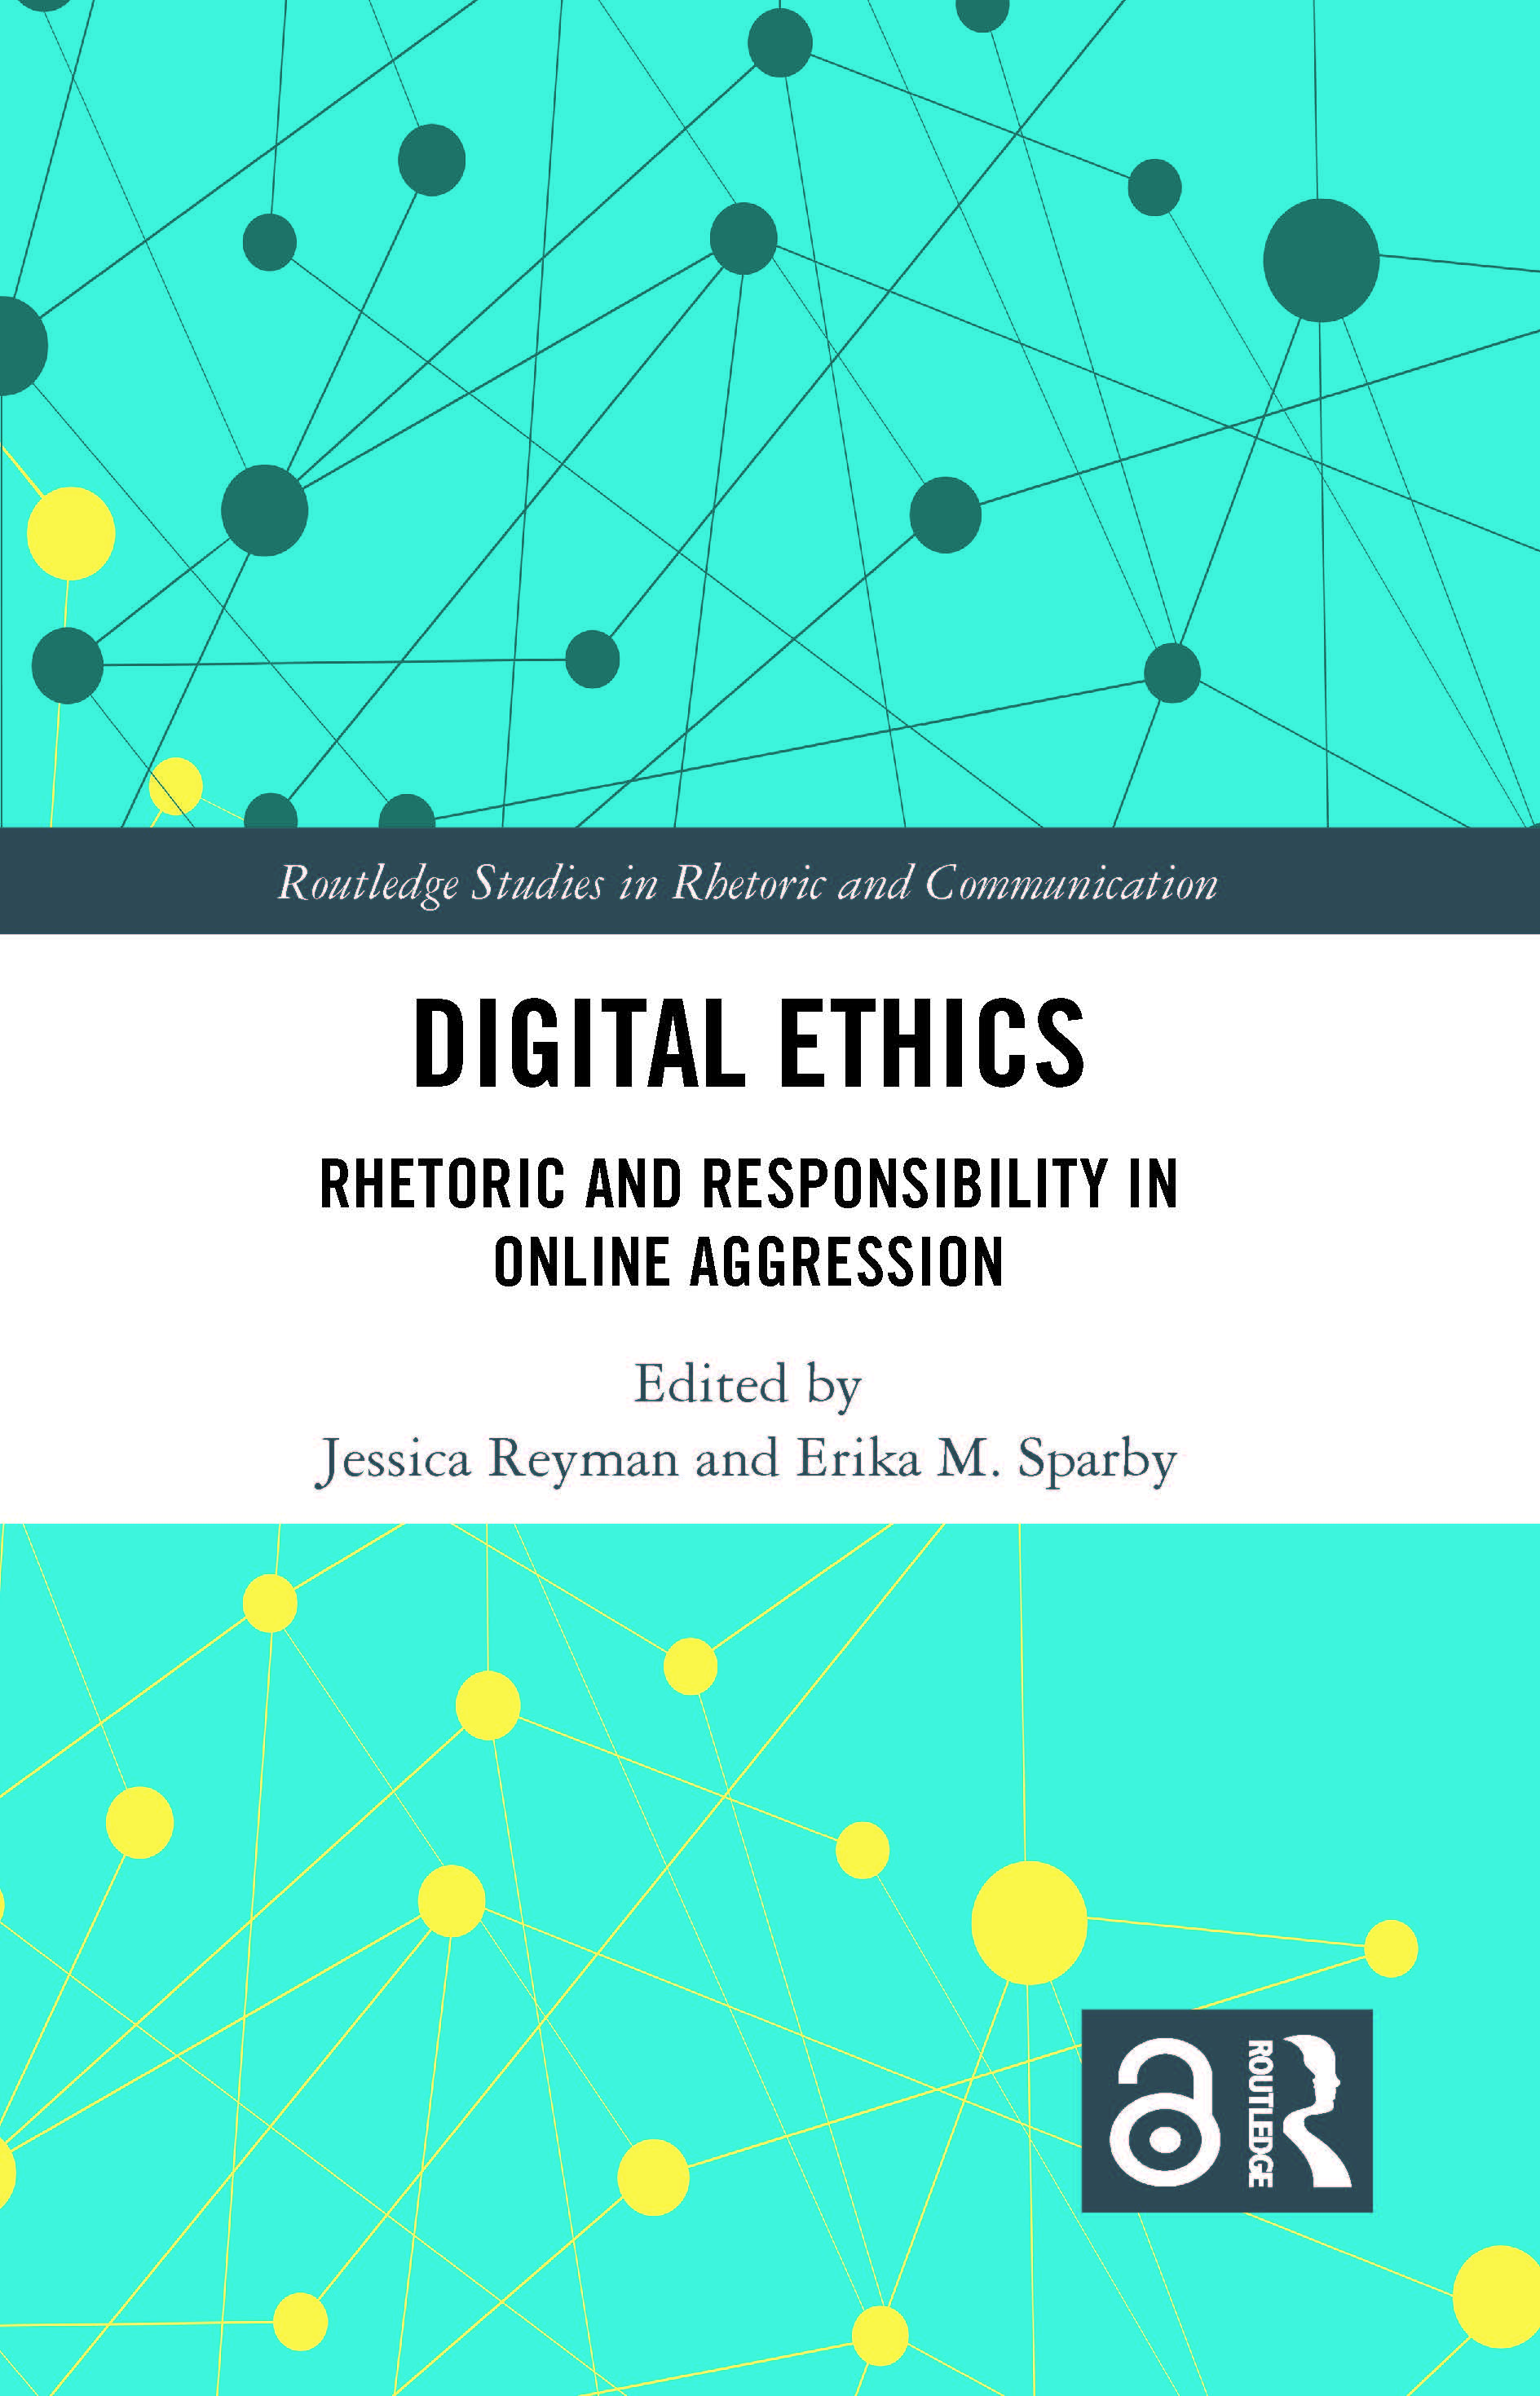 Digital Ethics: Rhetoric and Responsibility in Online Aggression book cover